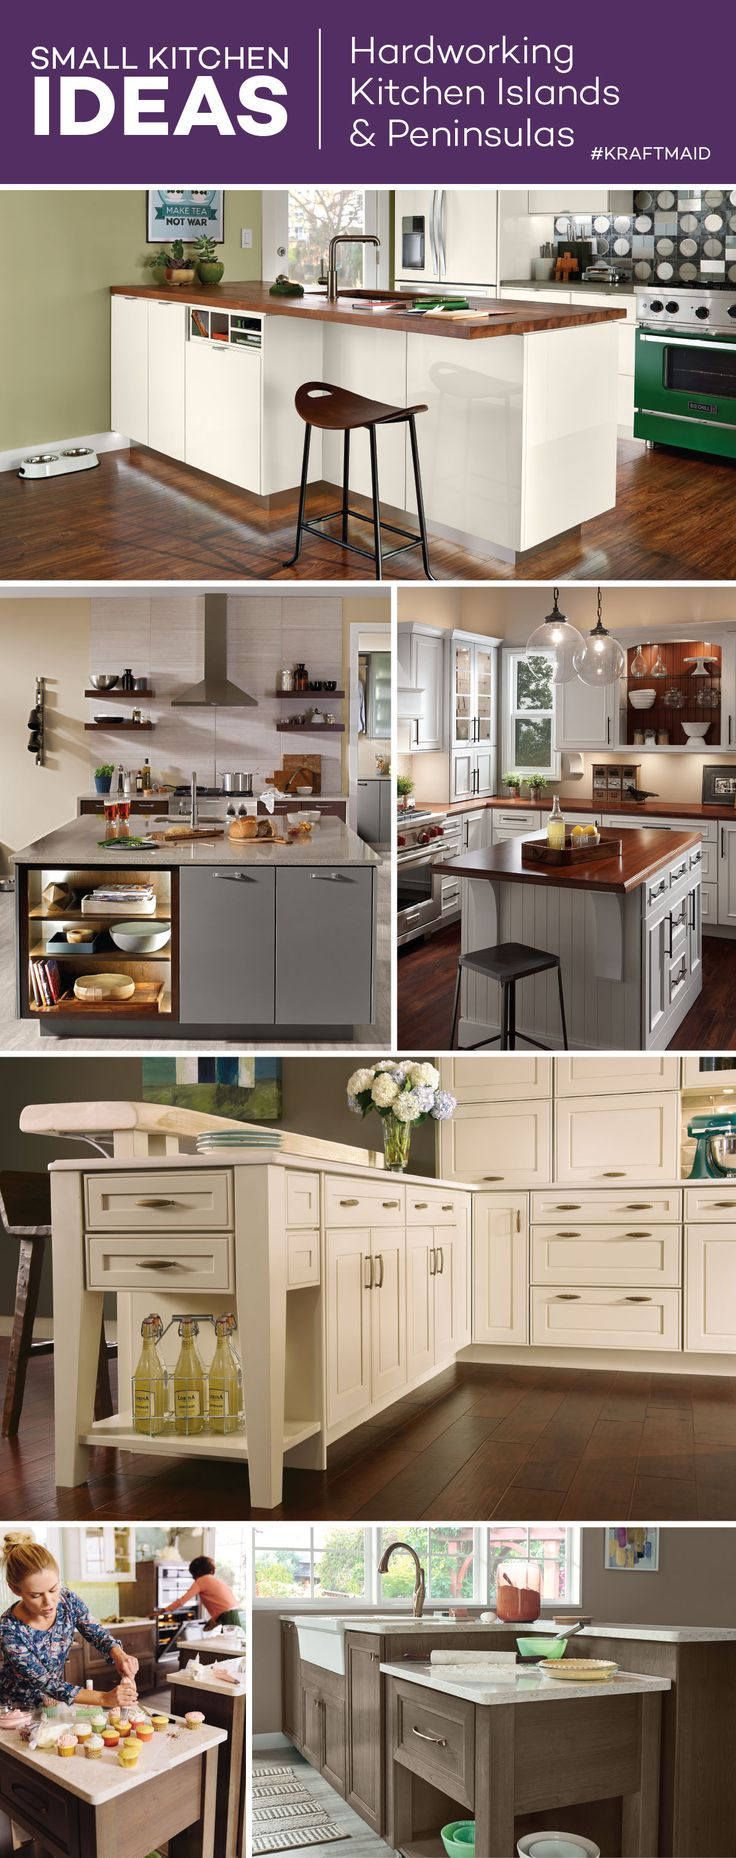 9 besten Small-Kitchen Ideas by KraftMaid® Bilder auf Pinterest ...